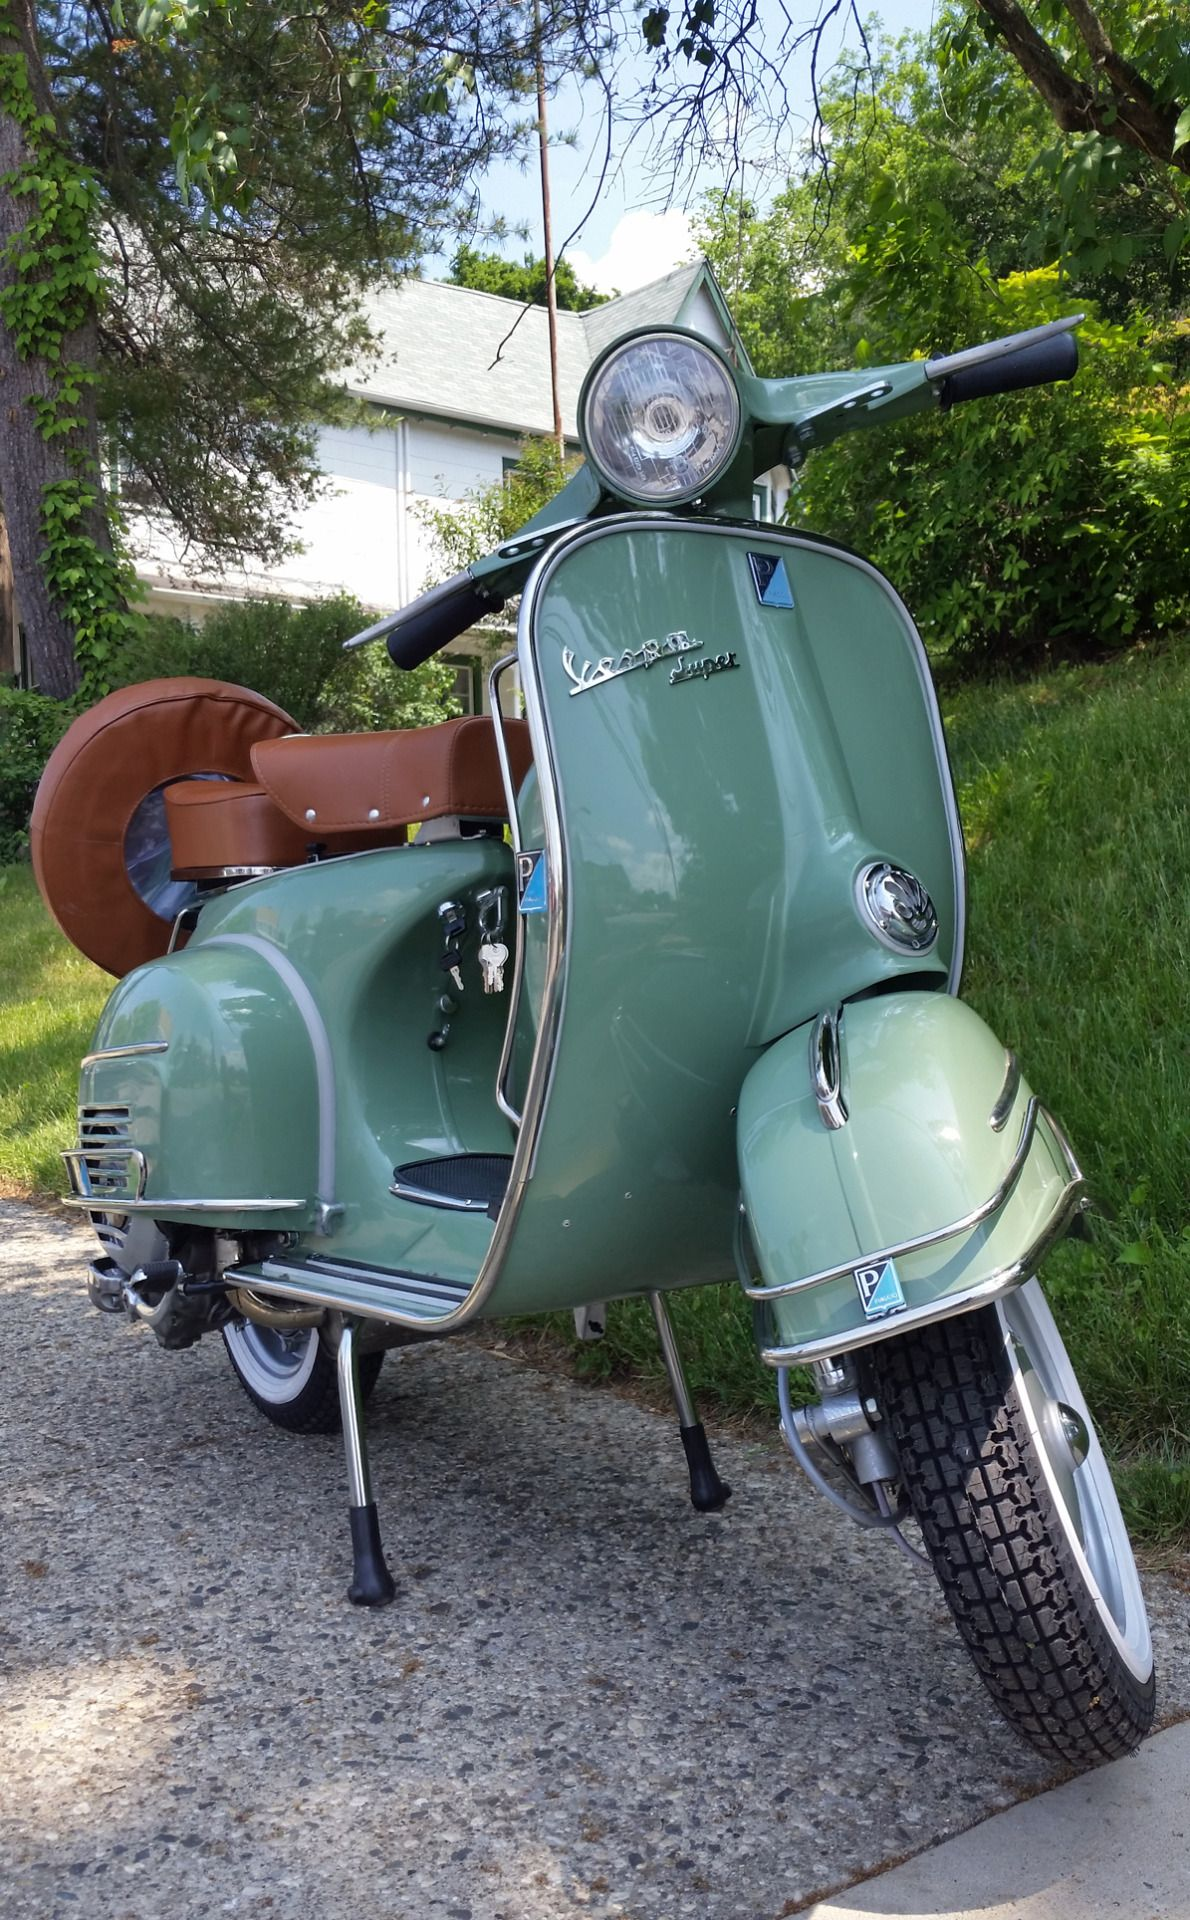 Your Vespa - Vintage Vespa scooters for sale … | Pinteres…